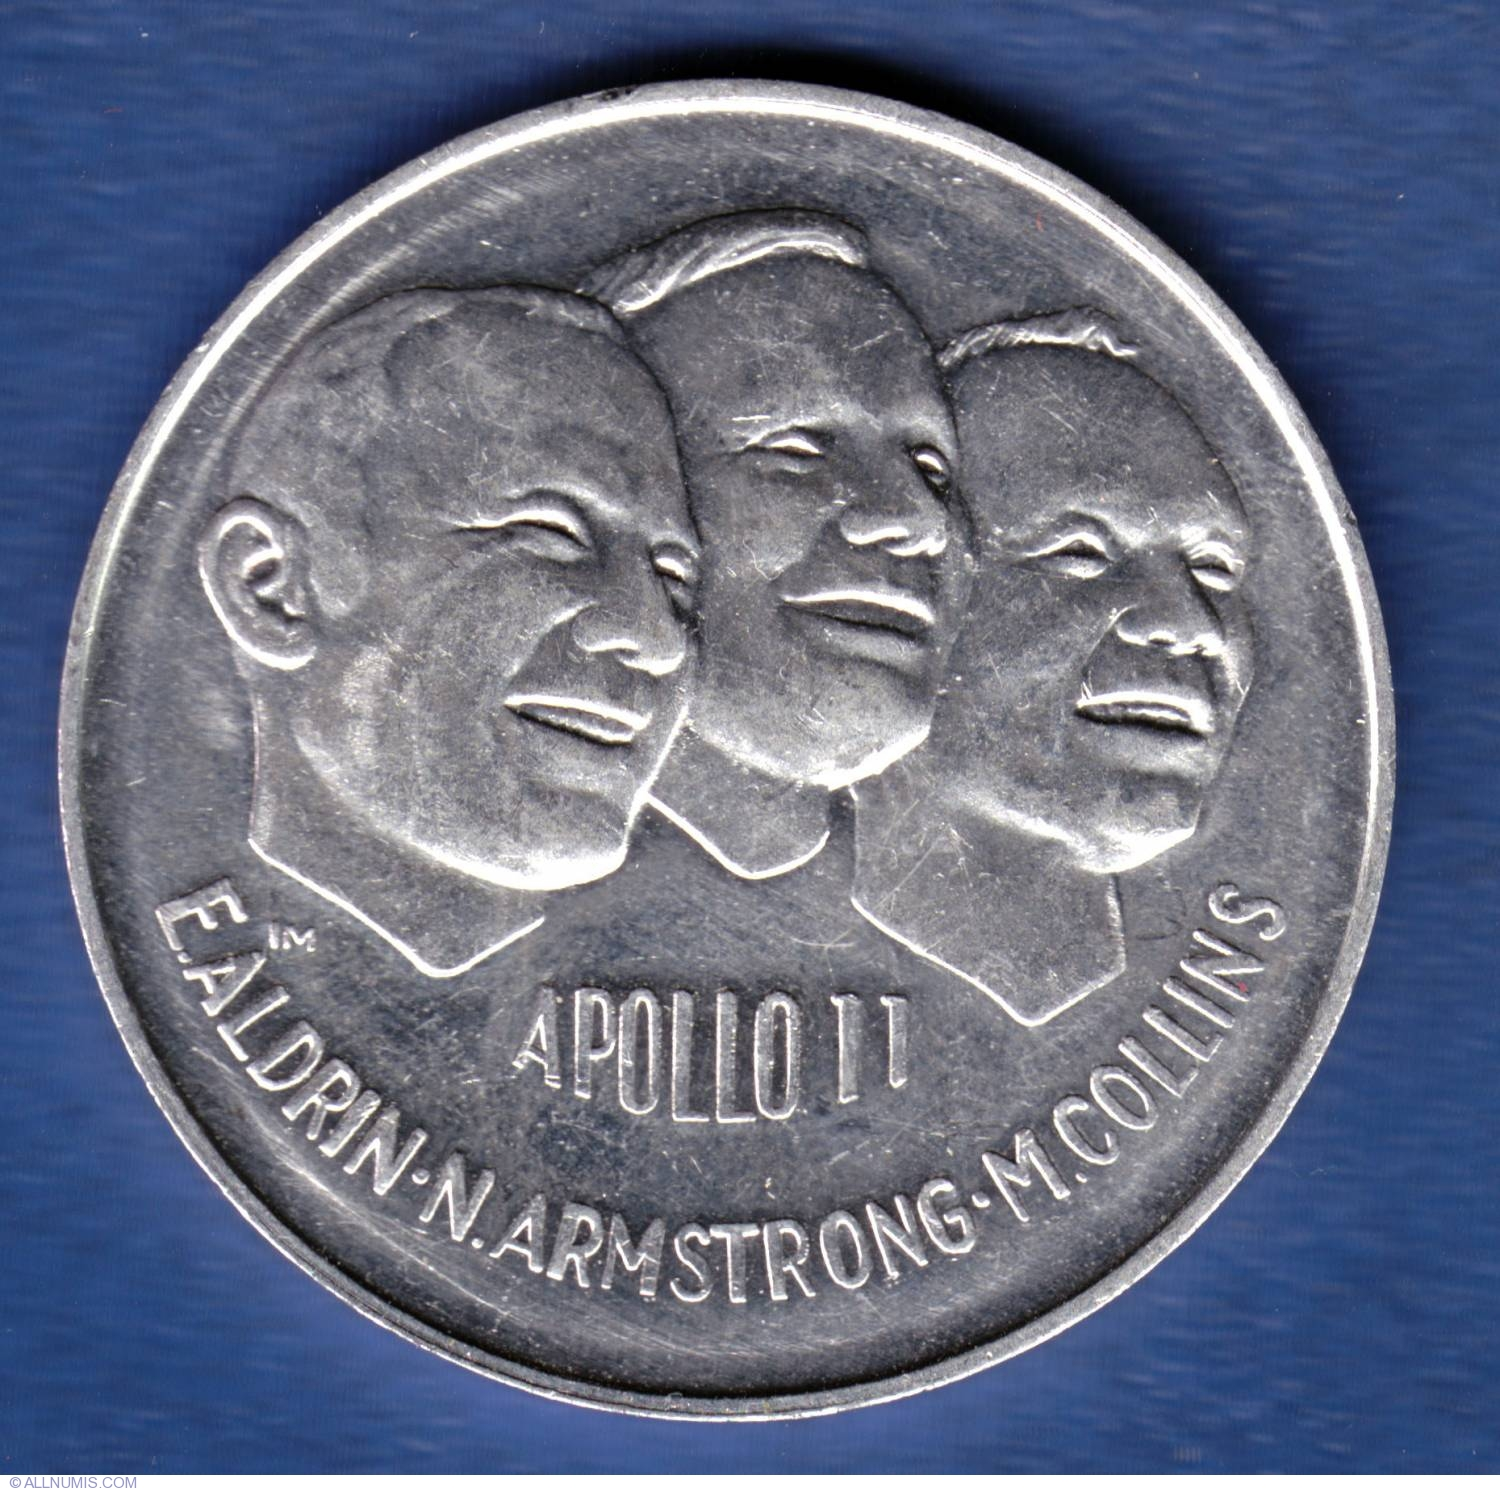 Apollo 11 Project Apollo Coin - Pics about space